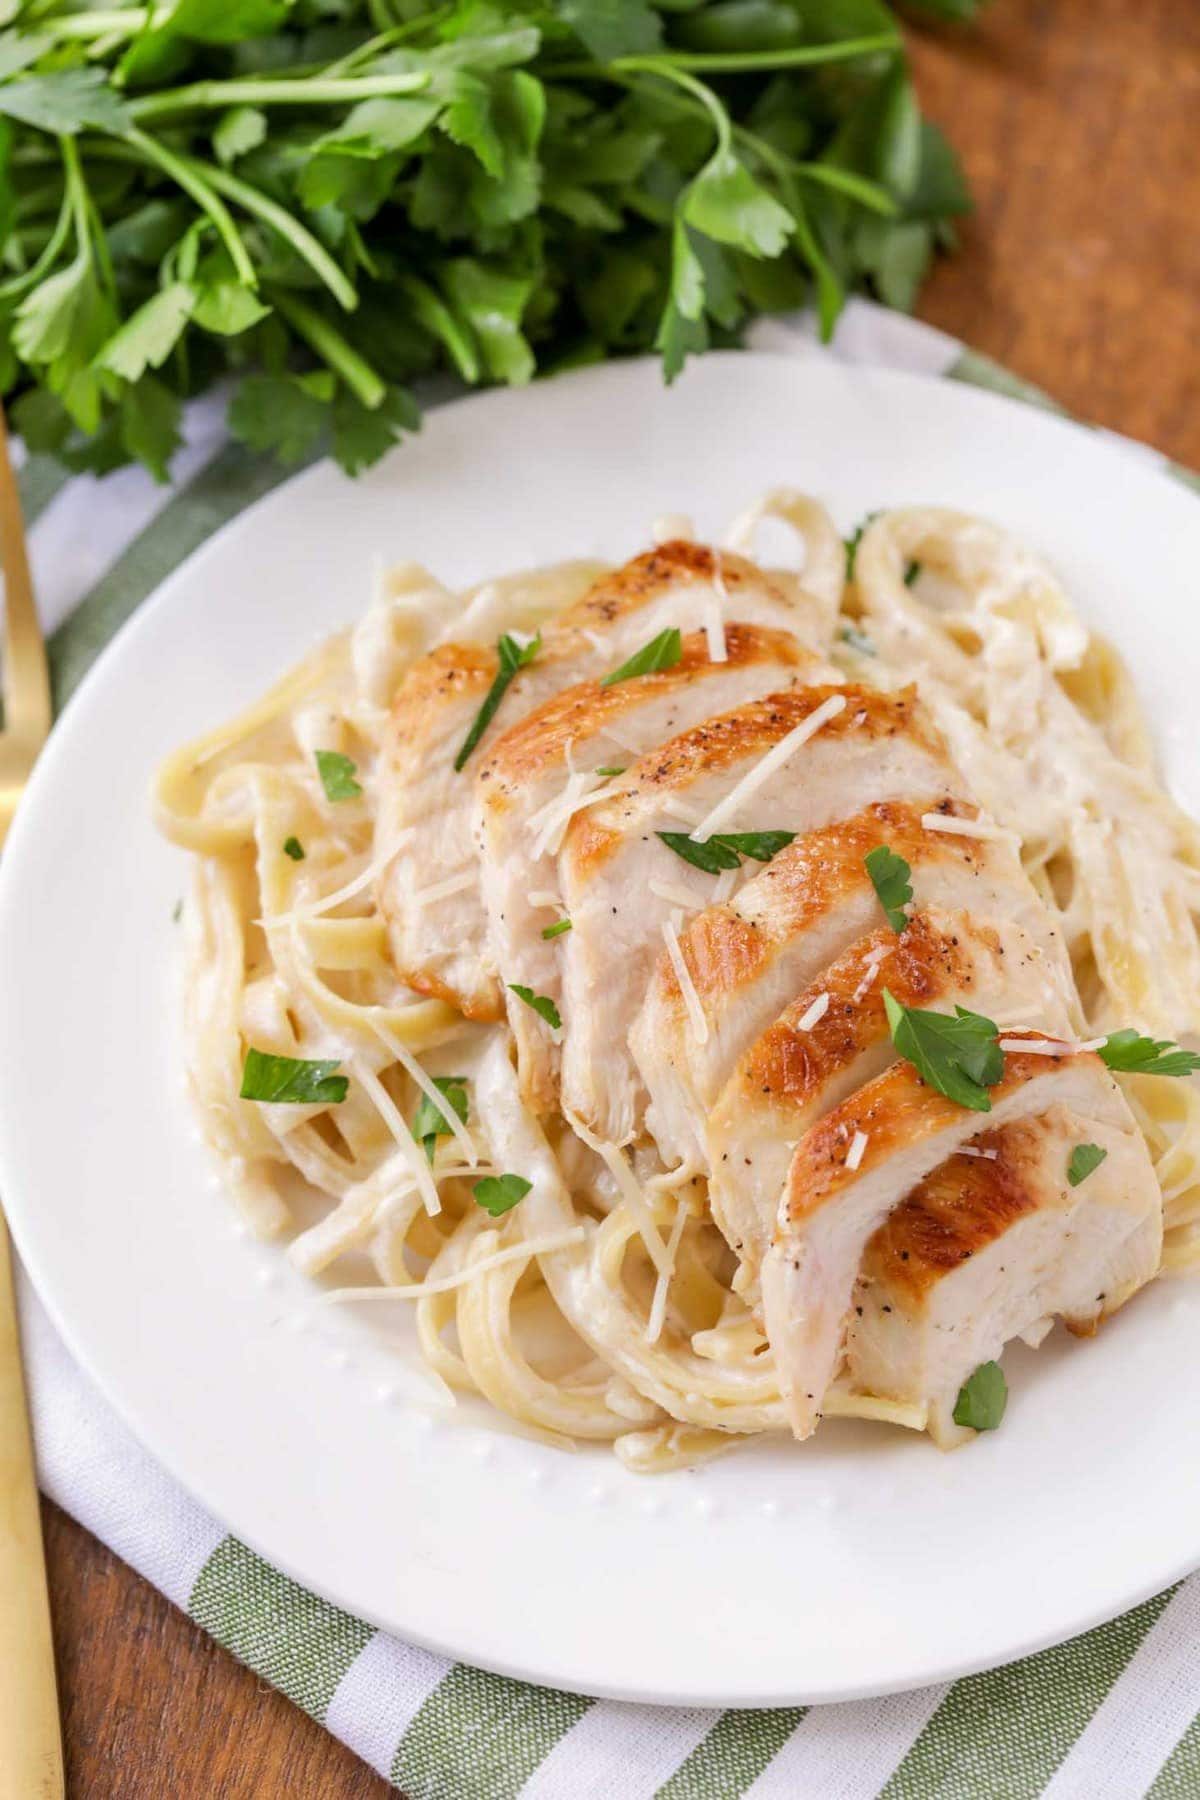 Chicken Fettuccine Alfredo served with fresh parsley